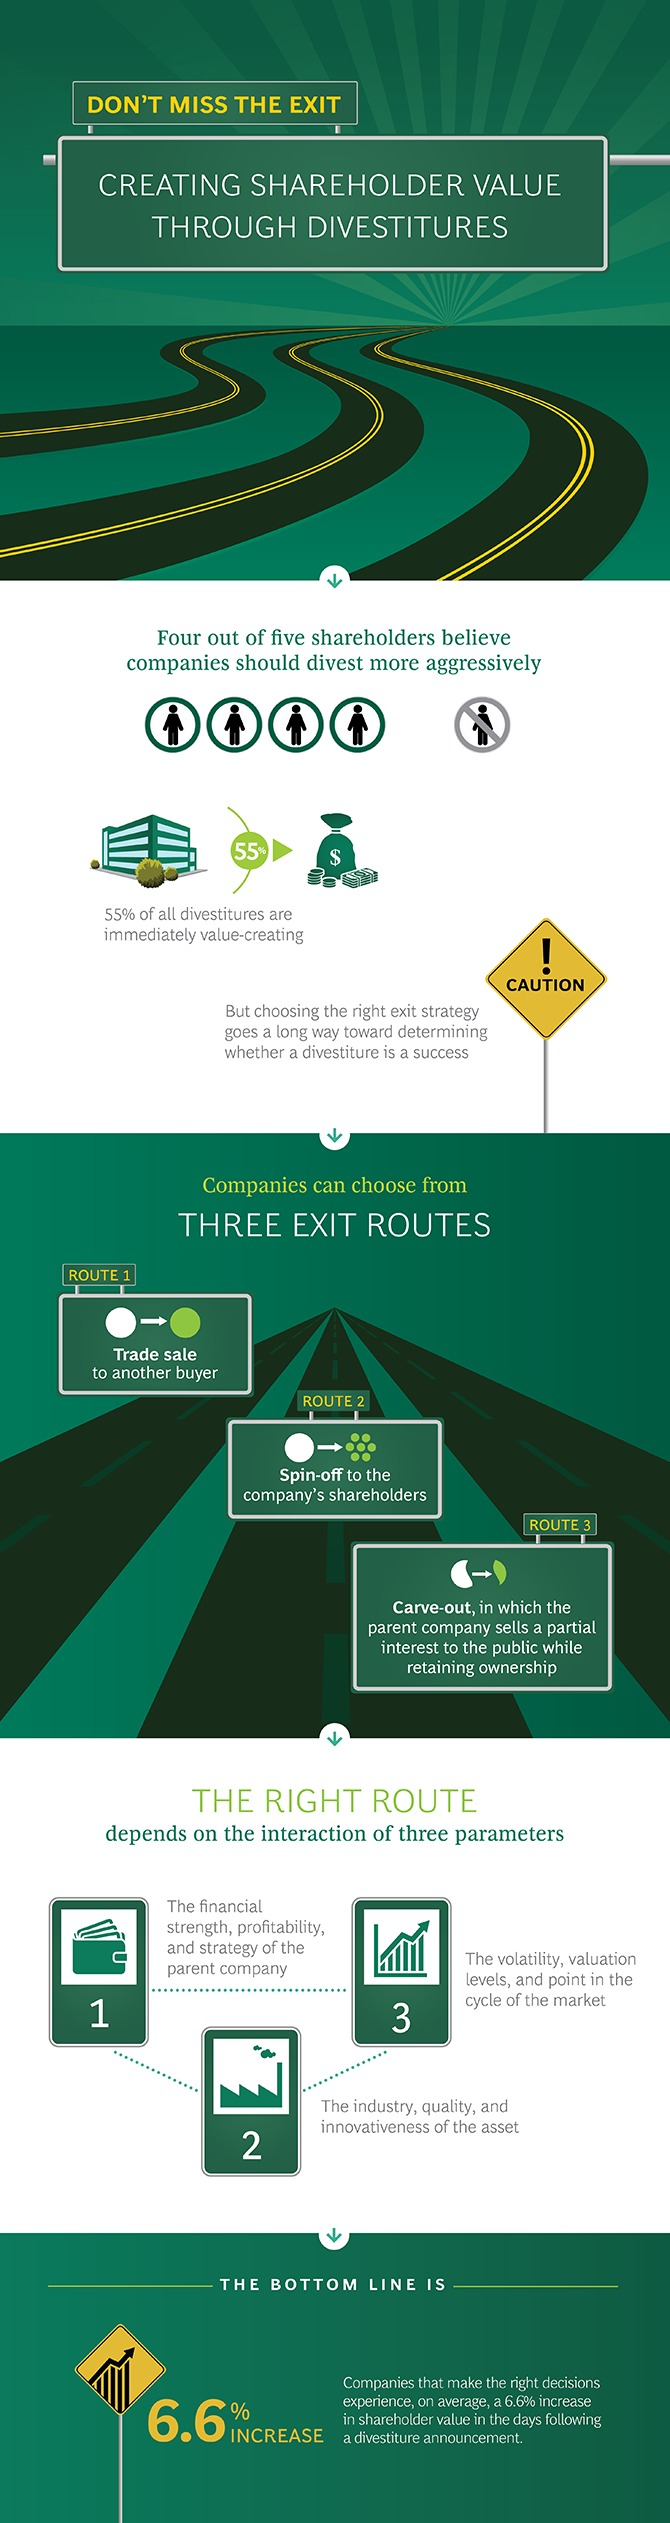 FY360° | Don't Miss the Exit (infographic)